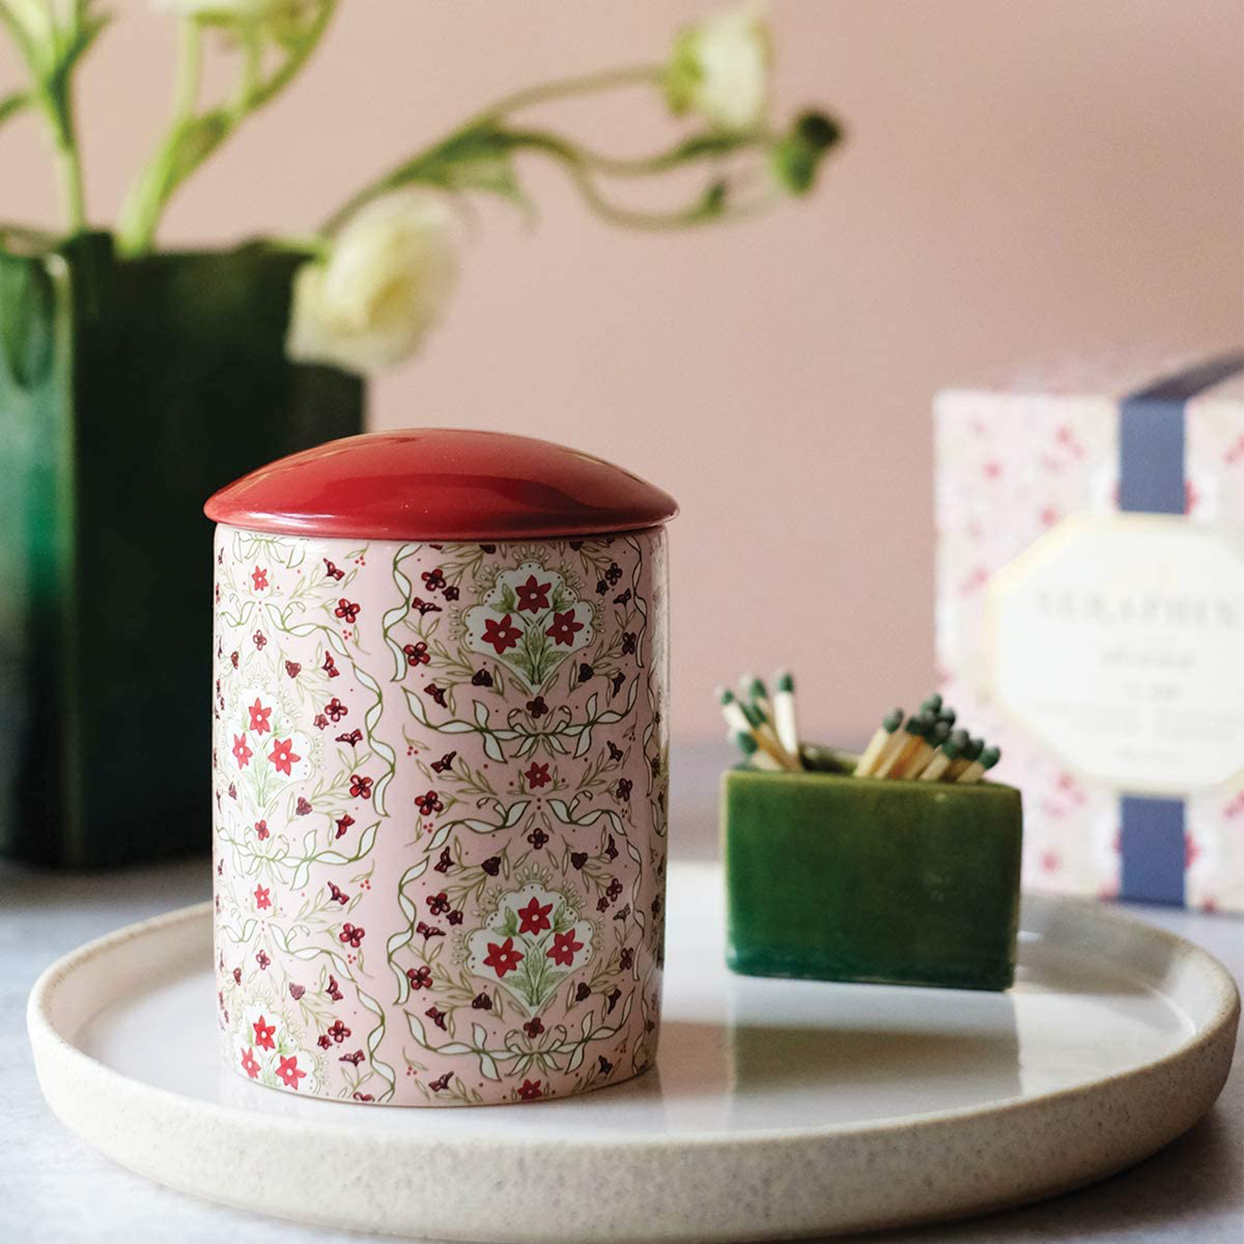 pink floral jar candle with red lid on tray